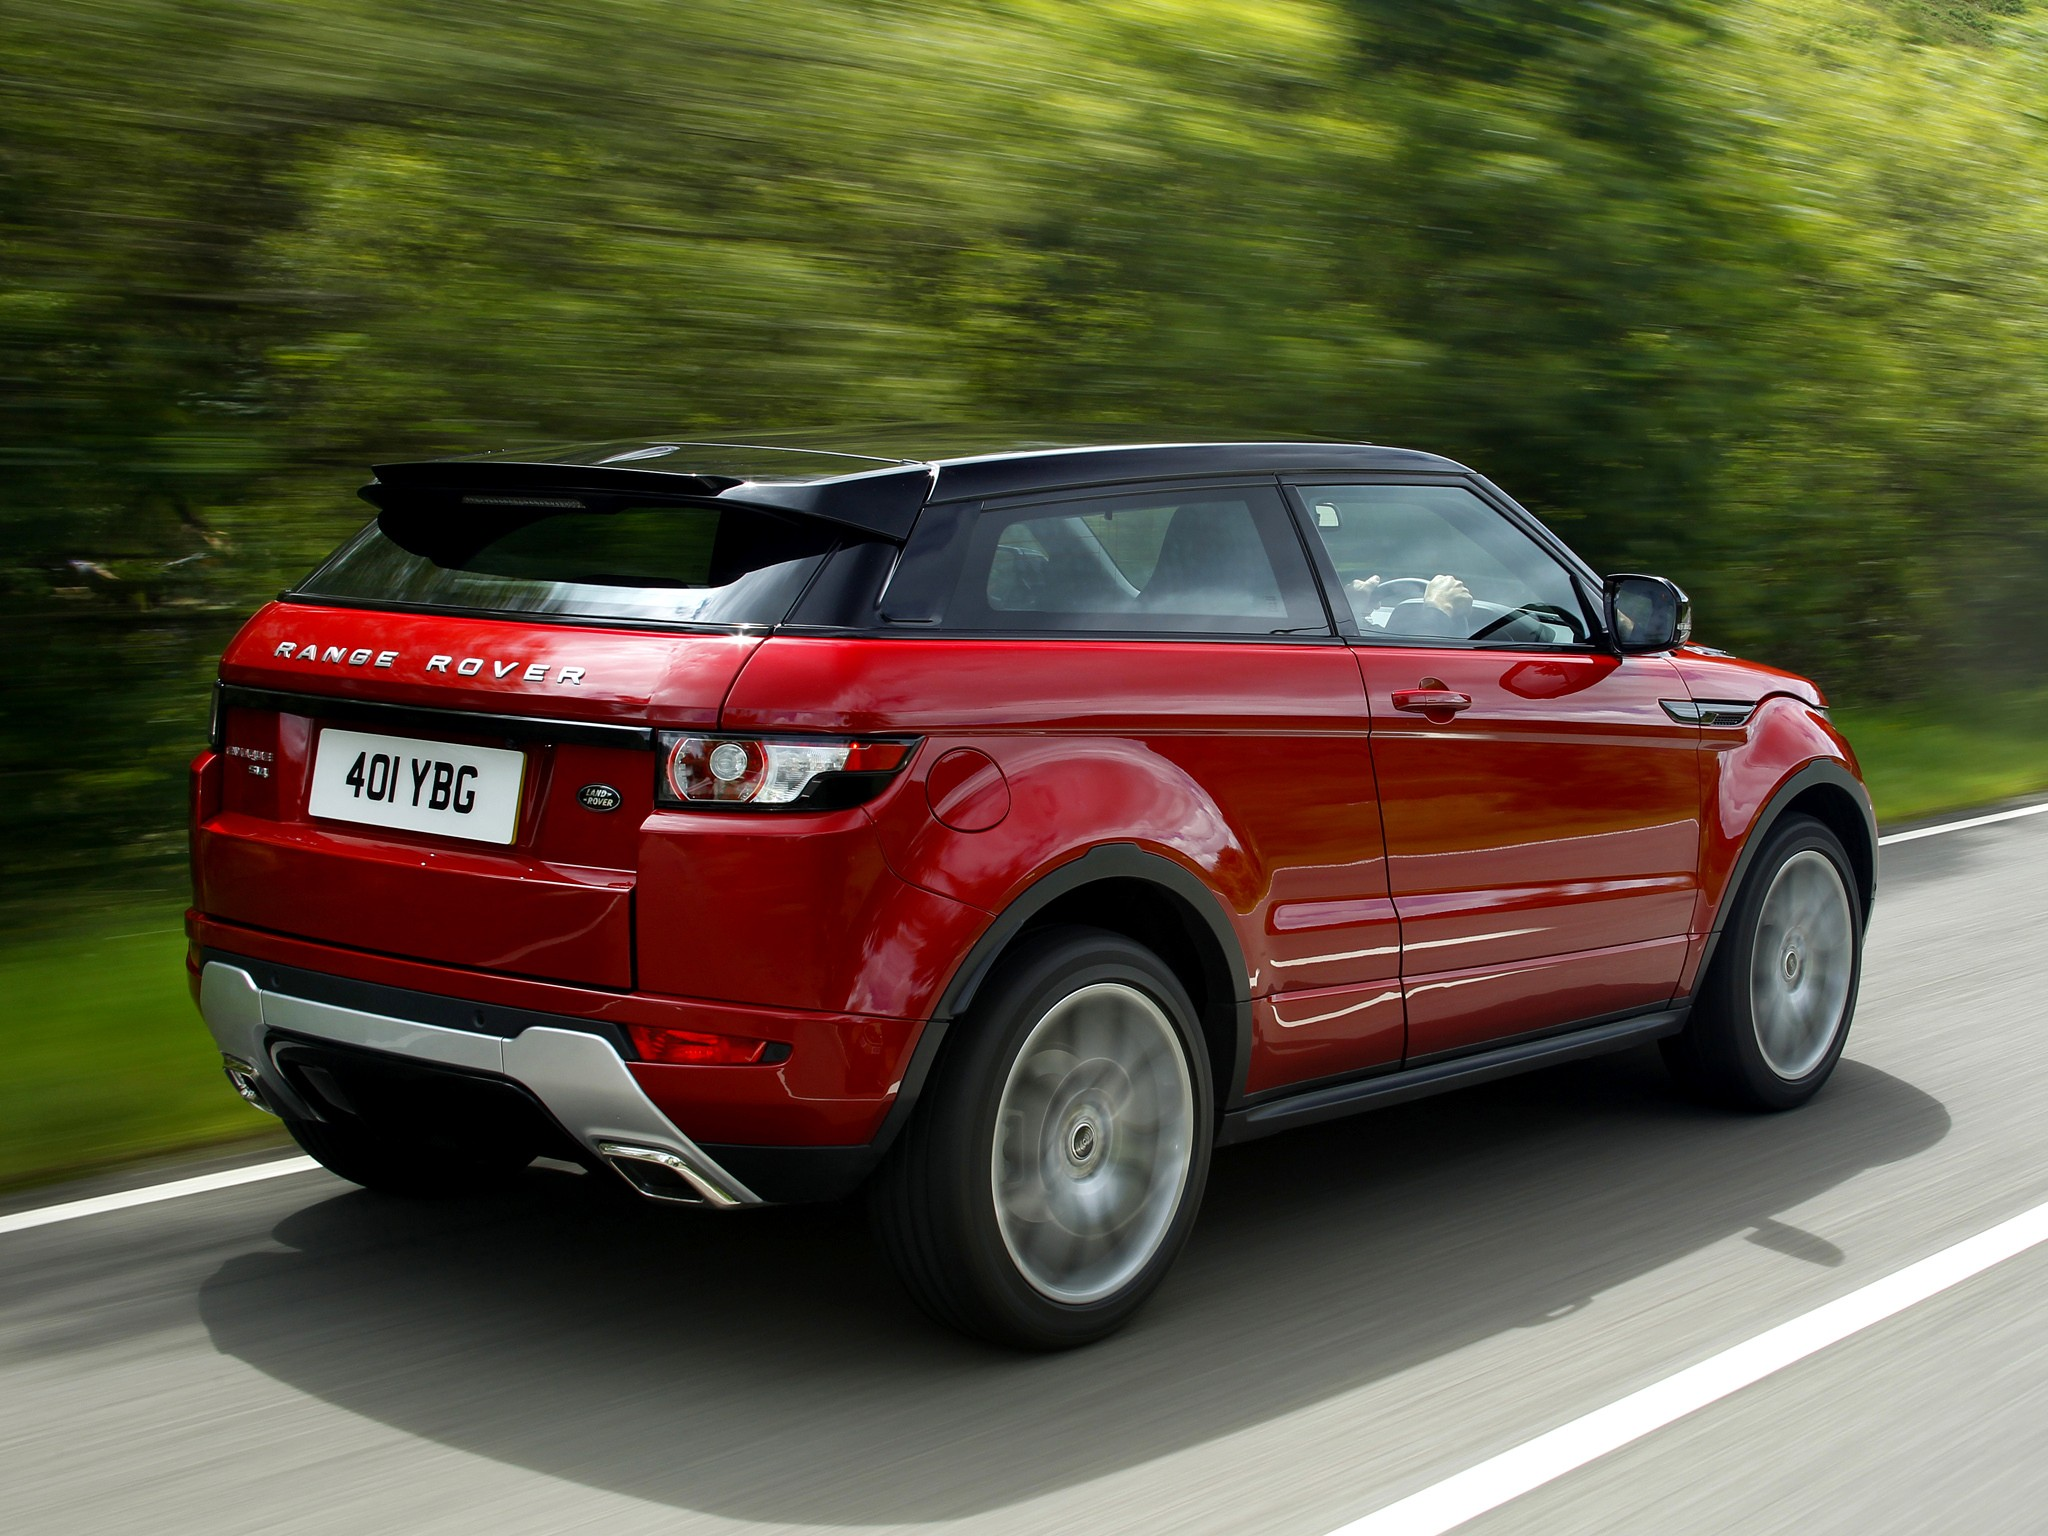 land rover range rover evoque coupe specs photos 2011. Black Bedroom Furniture Sets. Home Design Ideas